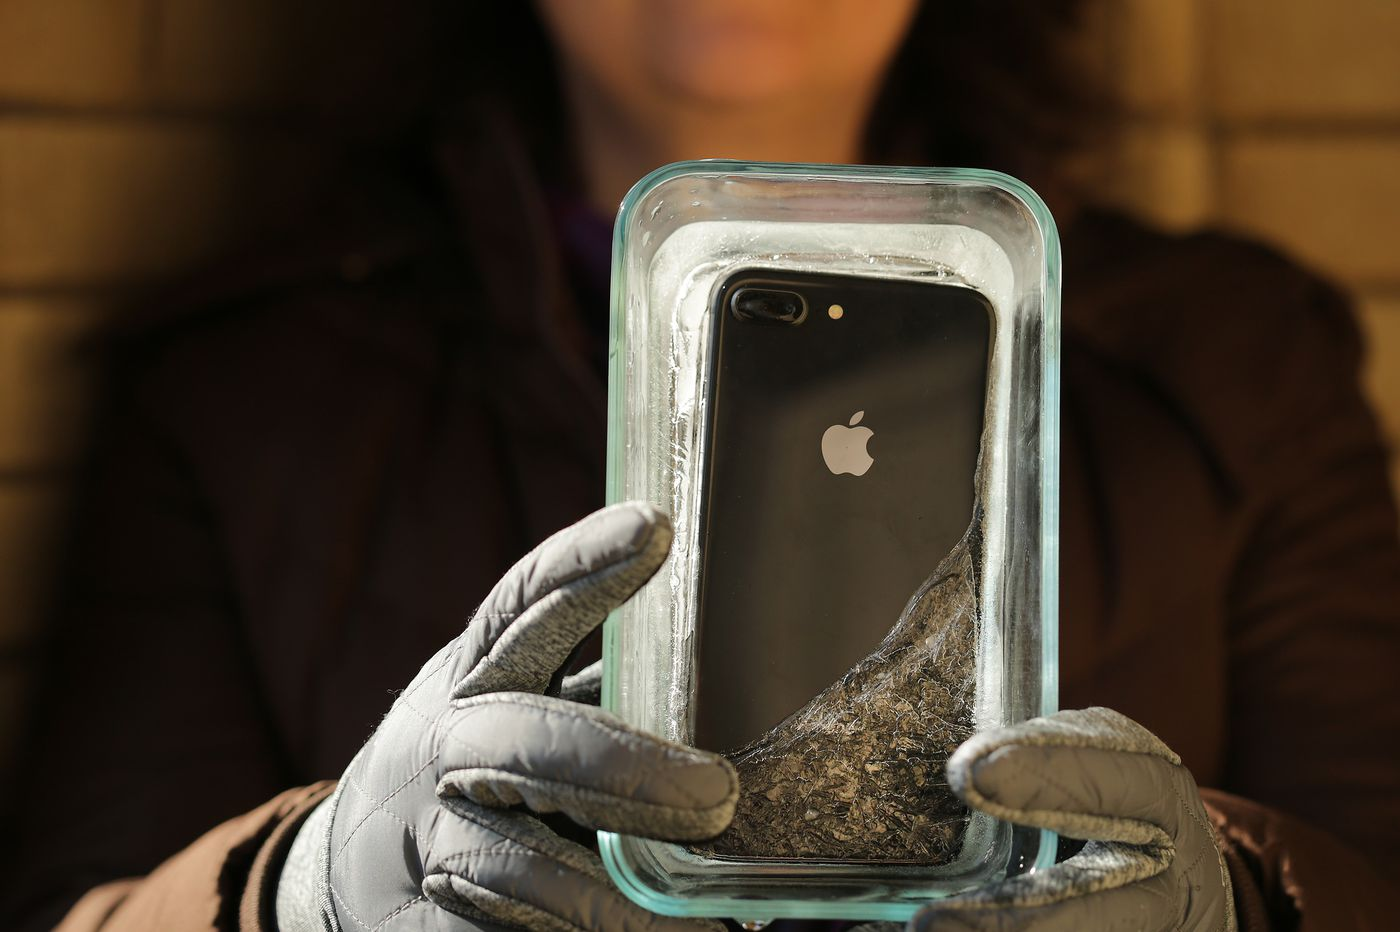 I traded my iPhone for bliss. | Maria Panaritis